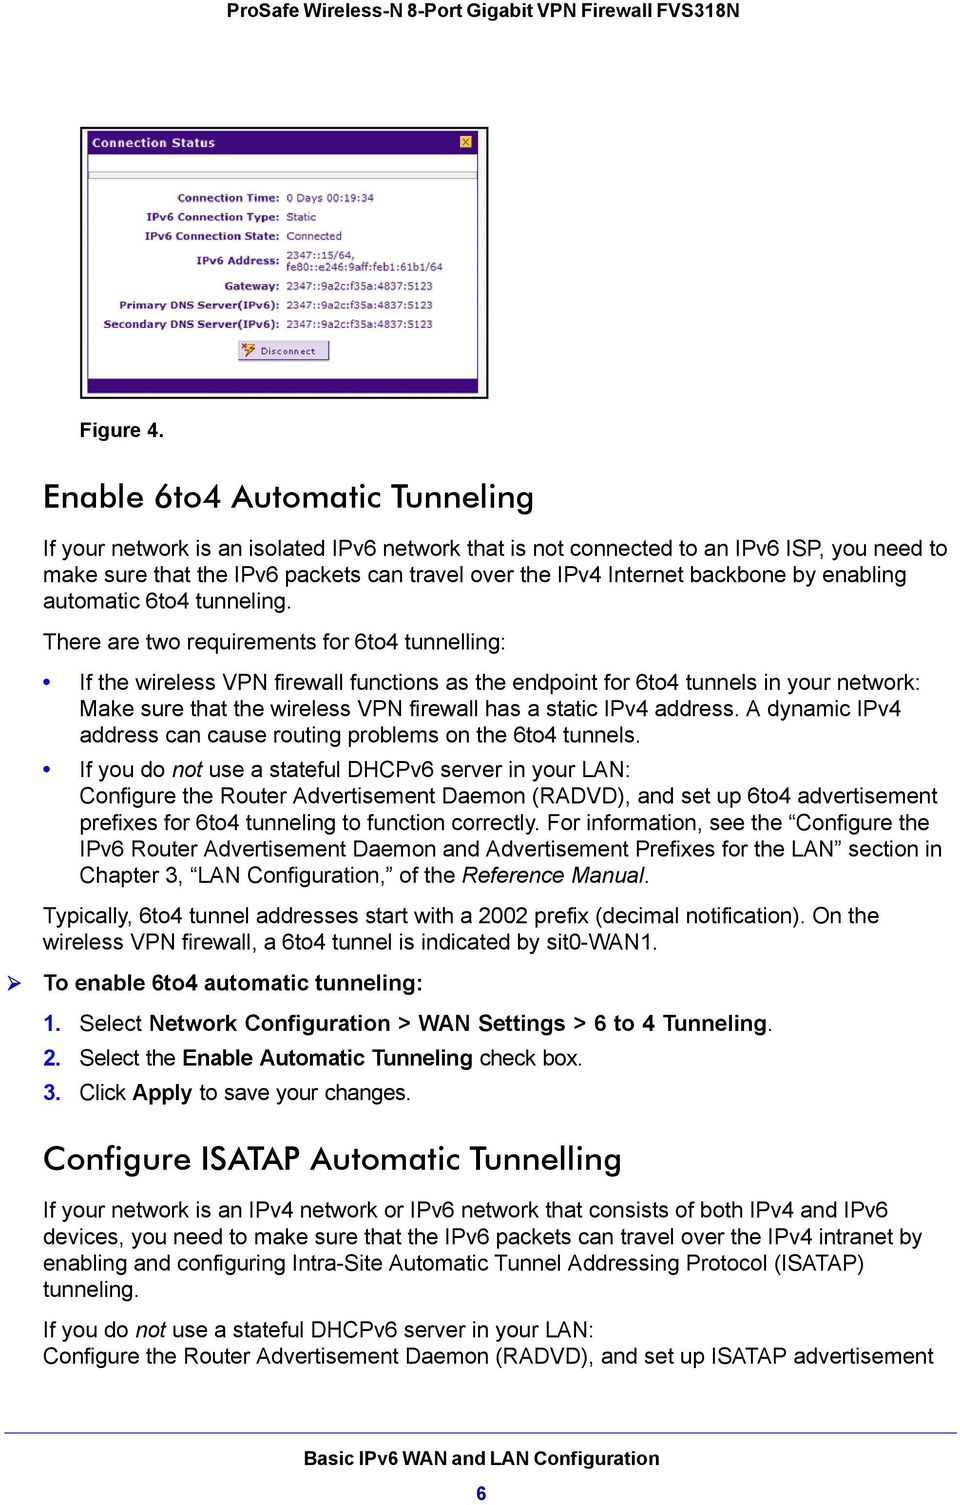 backbone by enabling automatic 6to4 tunneling.